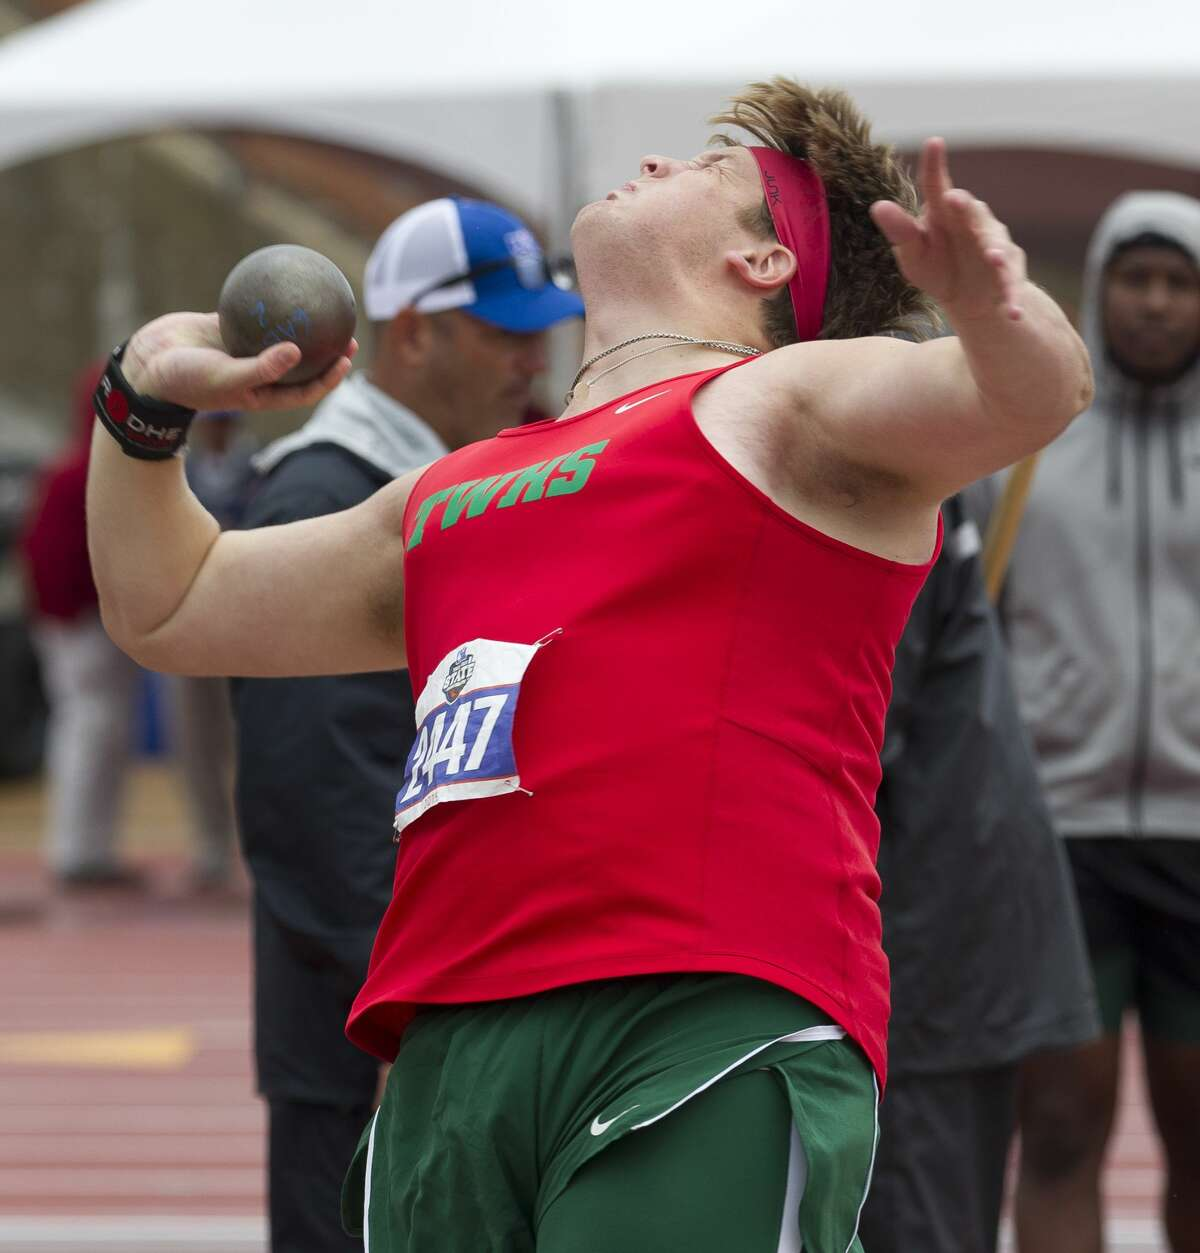 Patrick Piperi of The Woodlands competes in the 6A boys shot put during the UIL State Track & Field Championships at Mike A. Myers Stadium, Saturday, May, 11, 2019, in Austin.